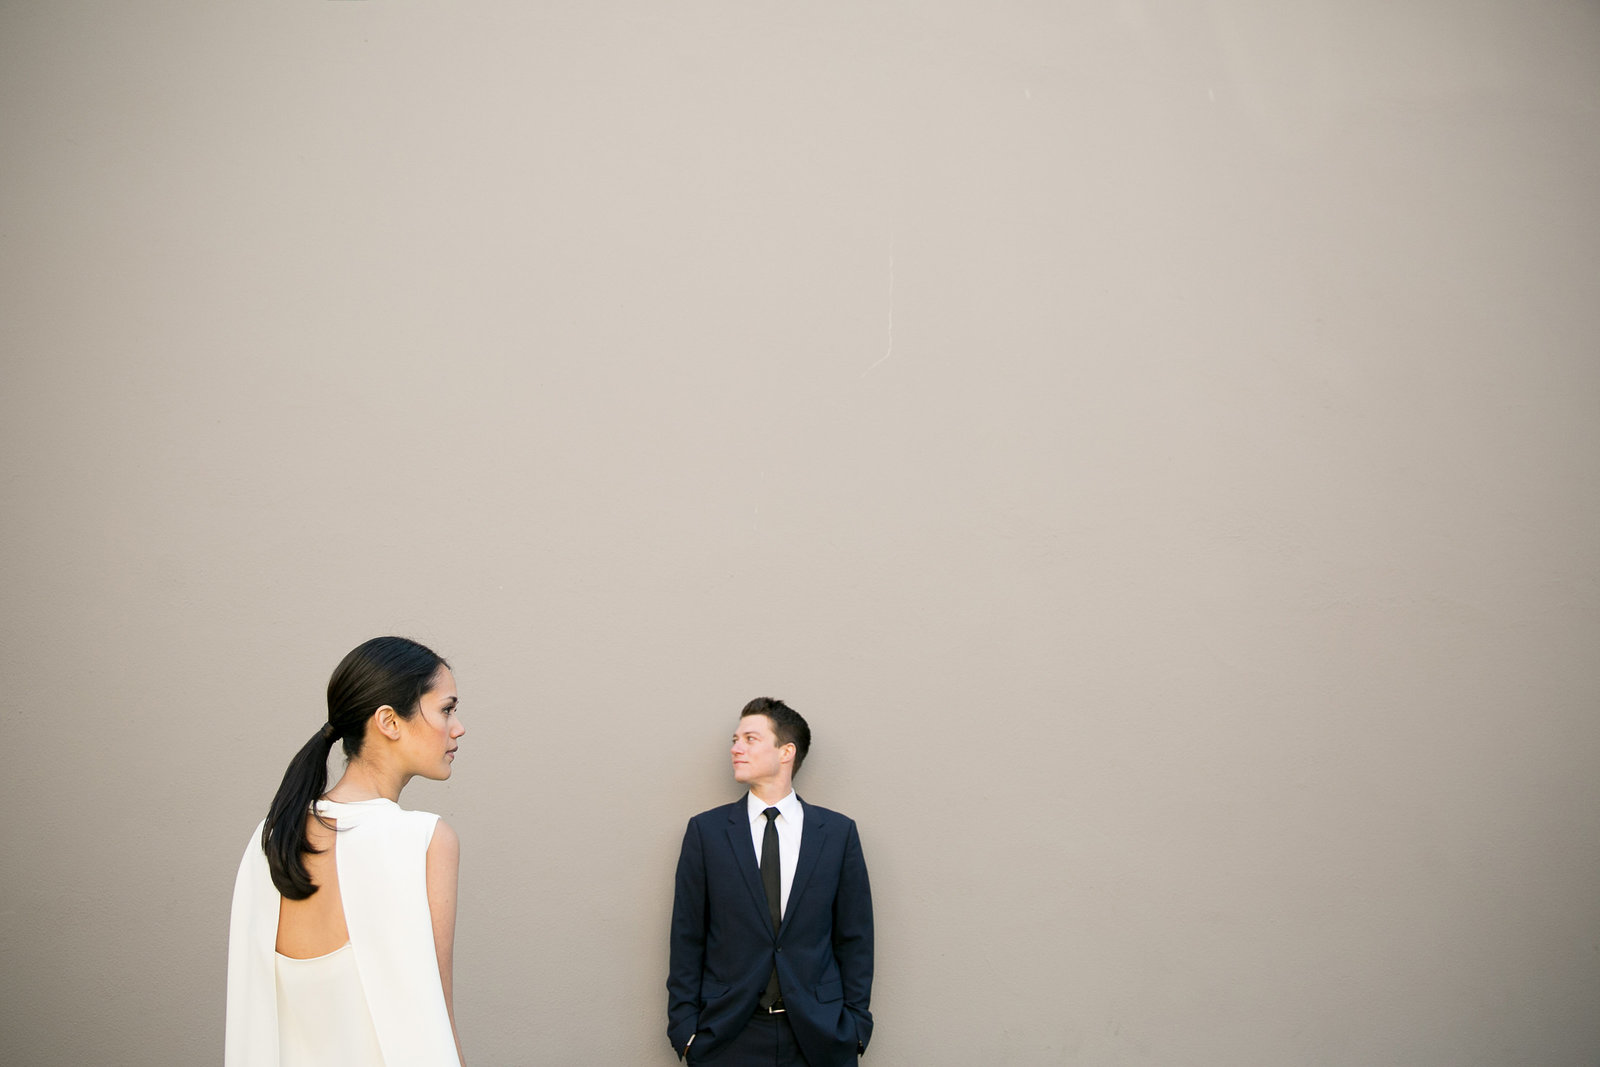 019-larissa-cleveland-engaged-wedding_photographer-san-francisco-carmel-napa-california-fr_eng_105